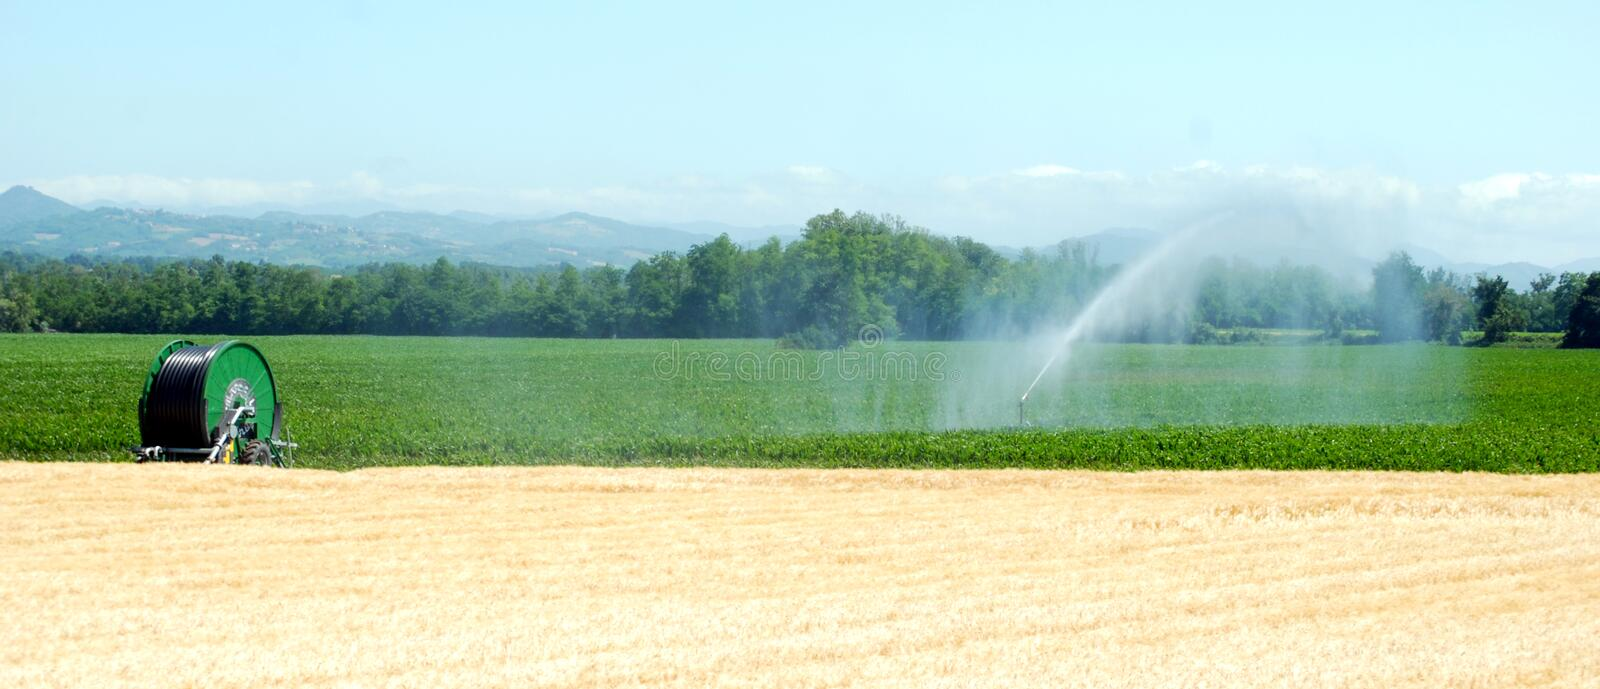 Irrigation on a wheat field royalty free stock photos